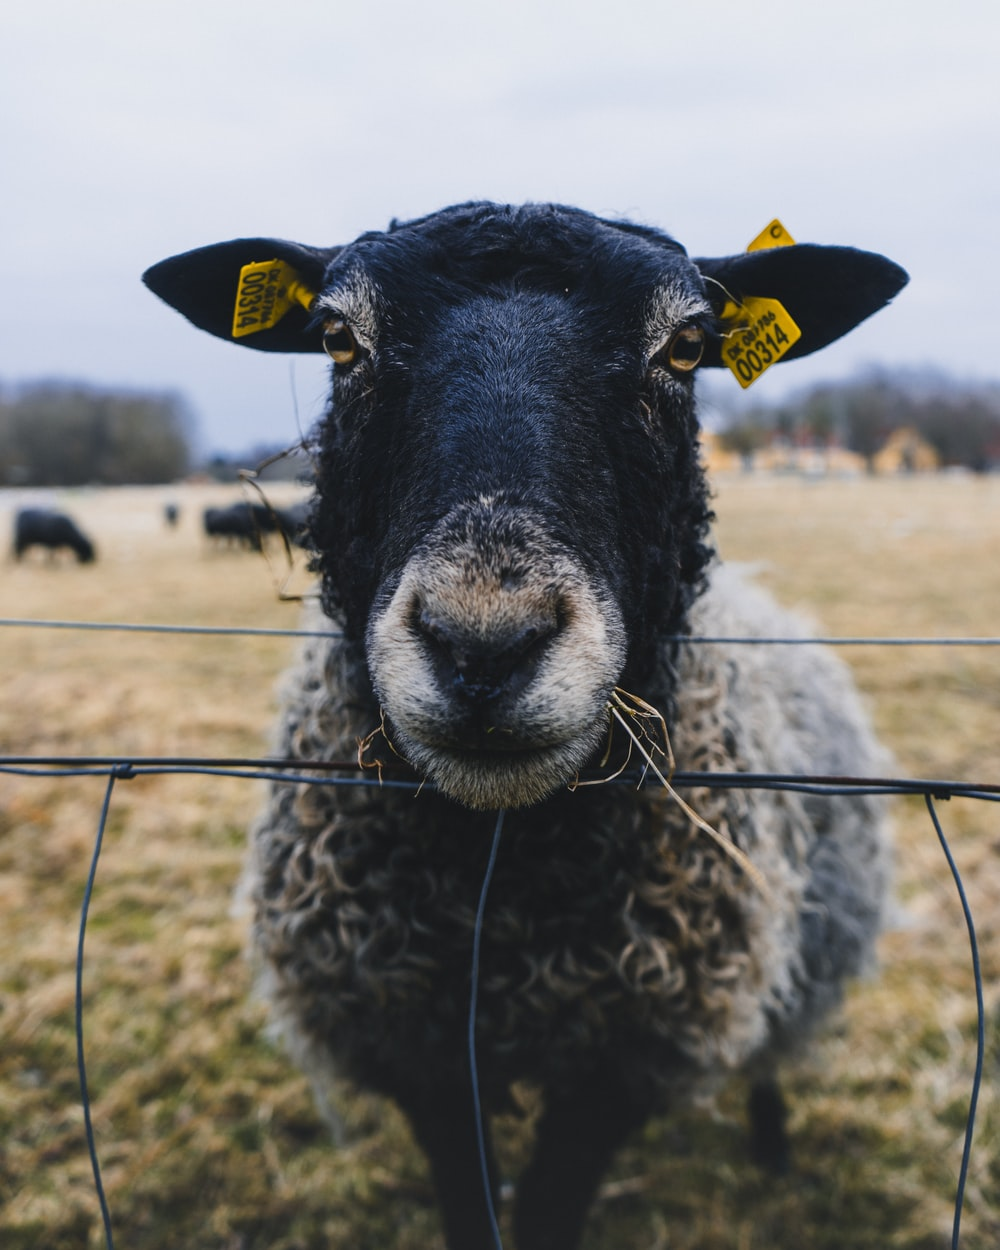 black sheep with yellow tag on ears